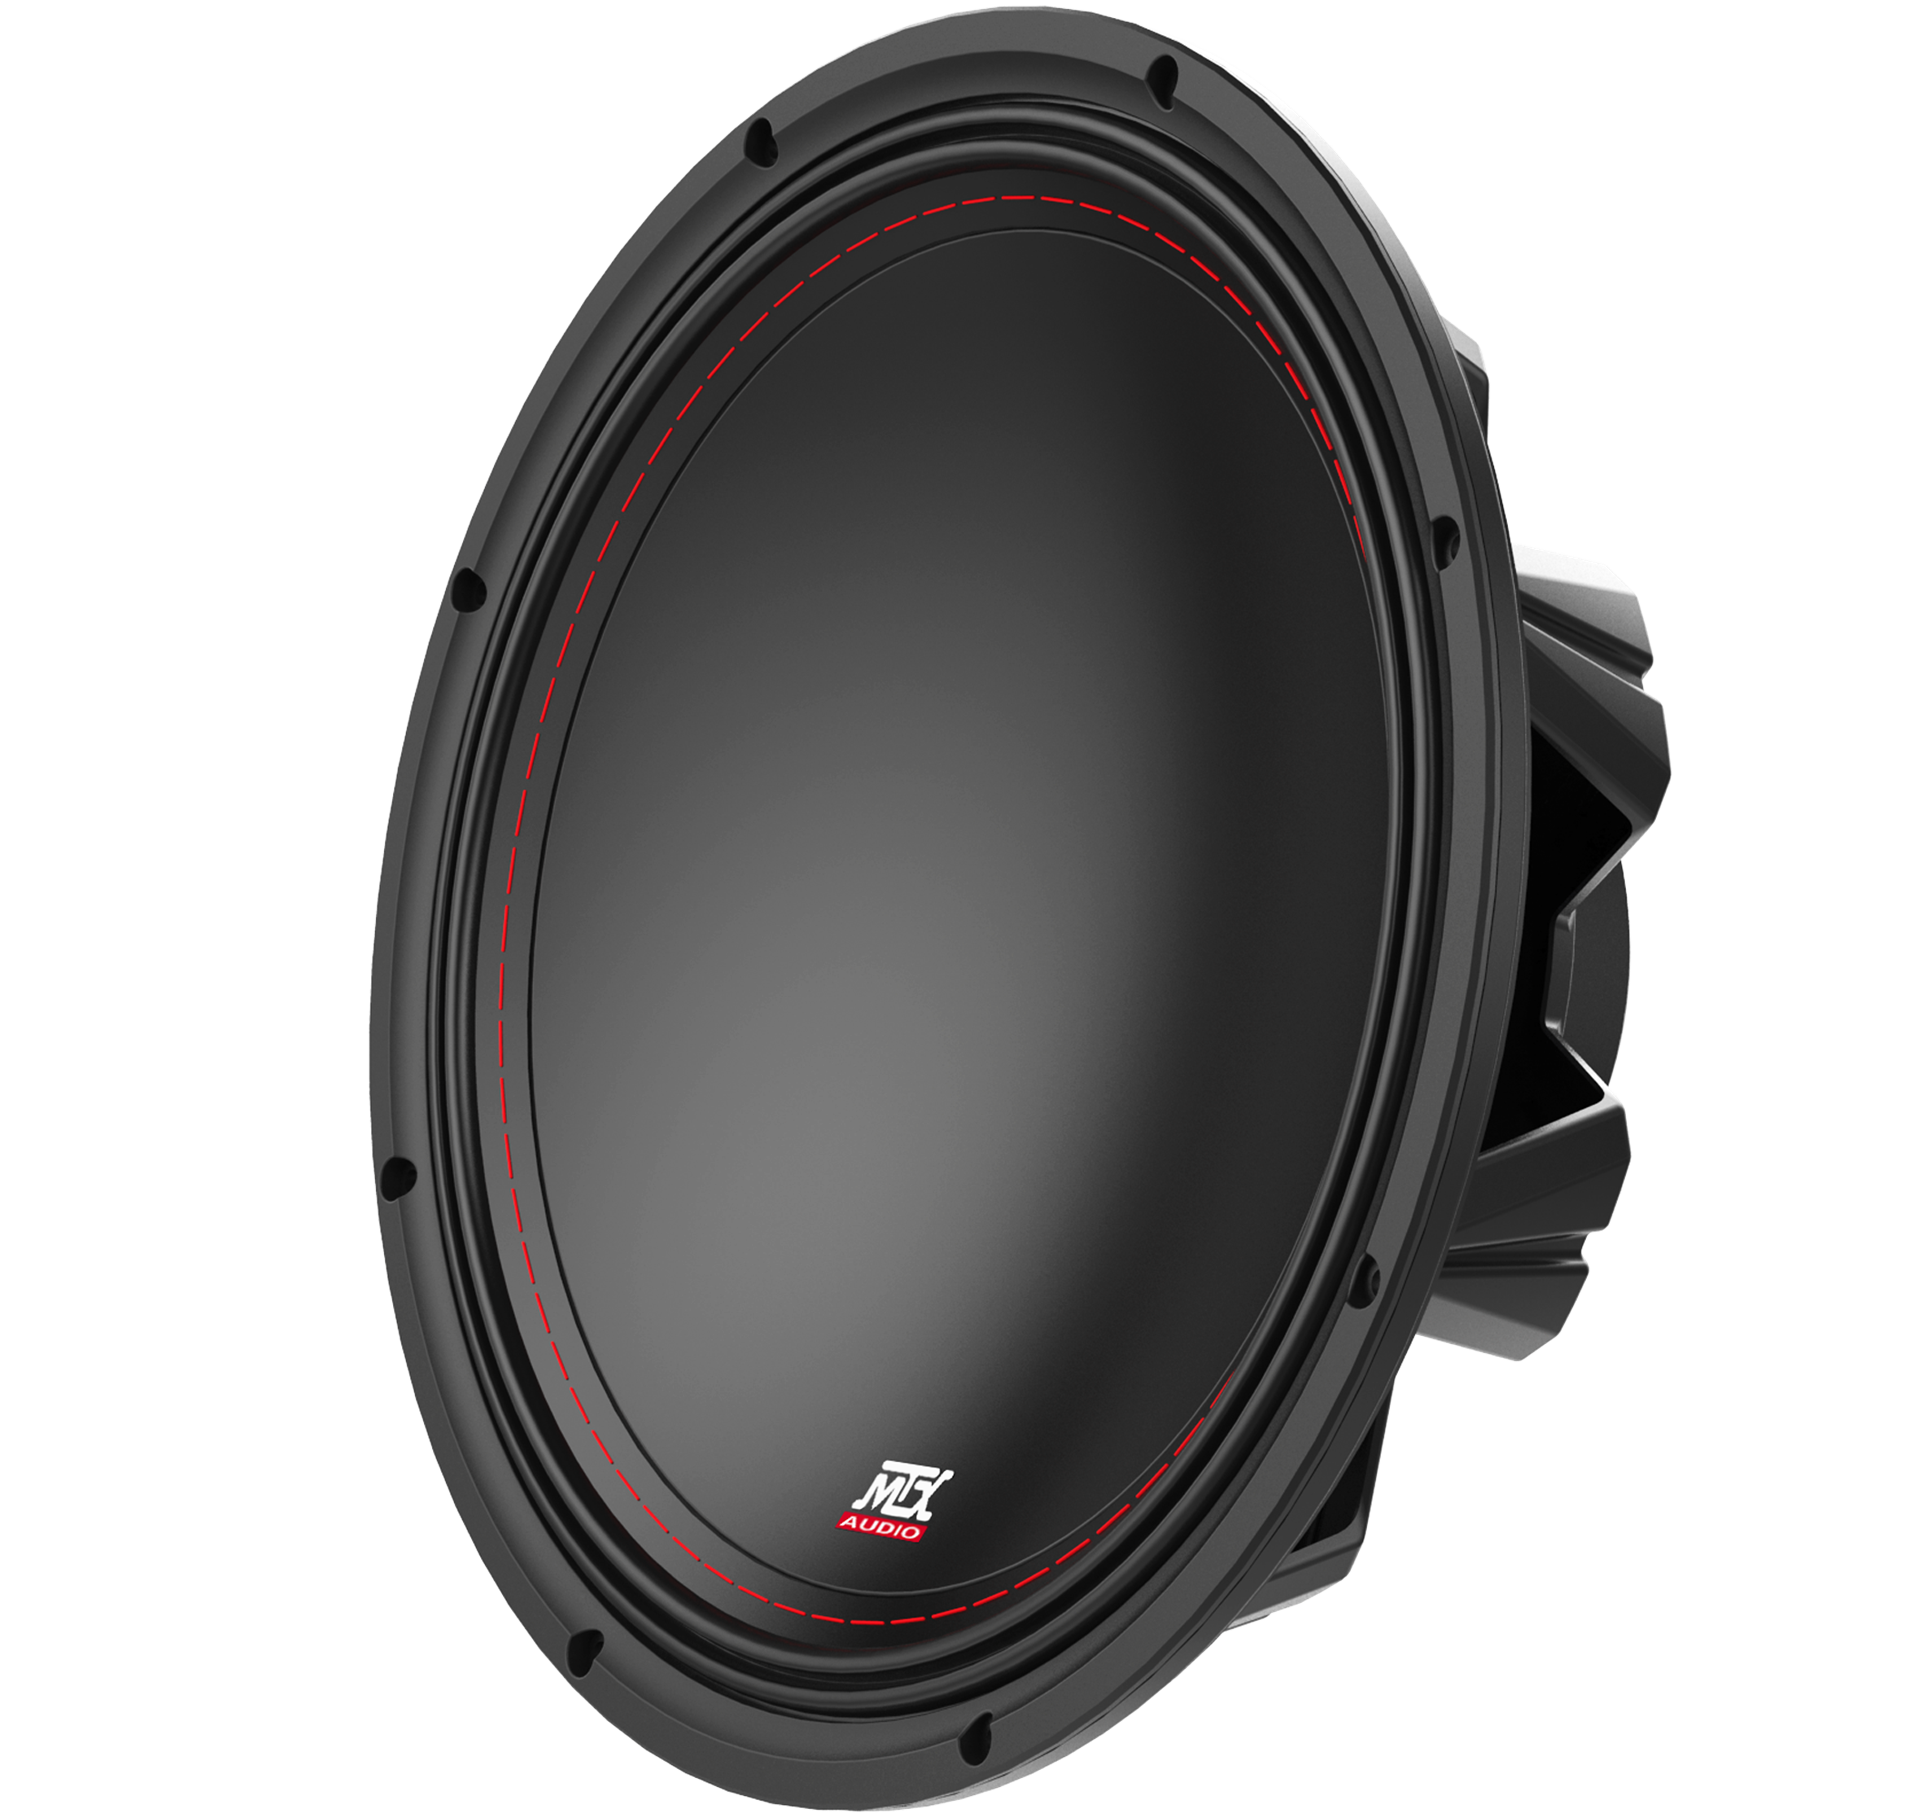 Search Mtx Audio Serious About Sound 12 Inch Subwoofer Legacy 250 Watt Rms 4 Car 3512 04